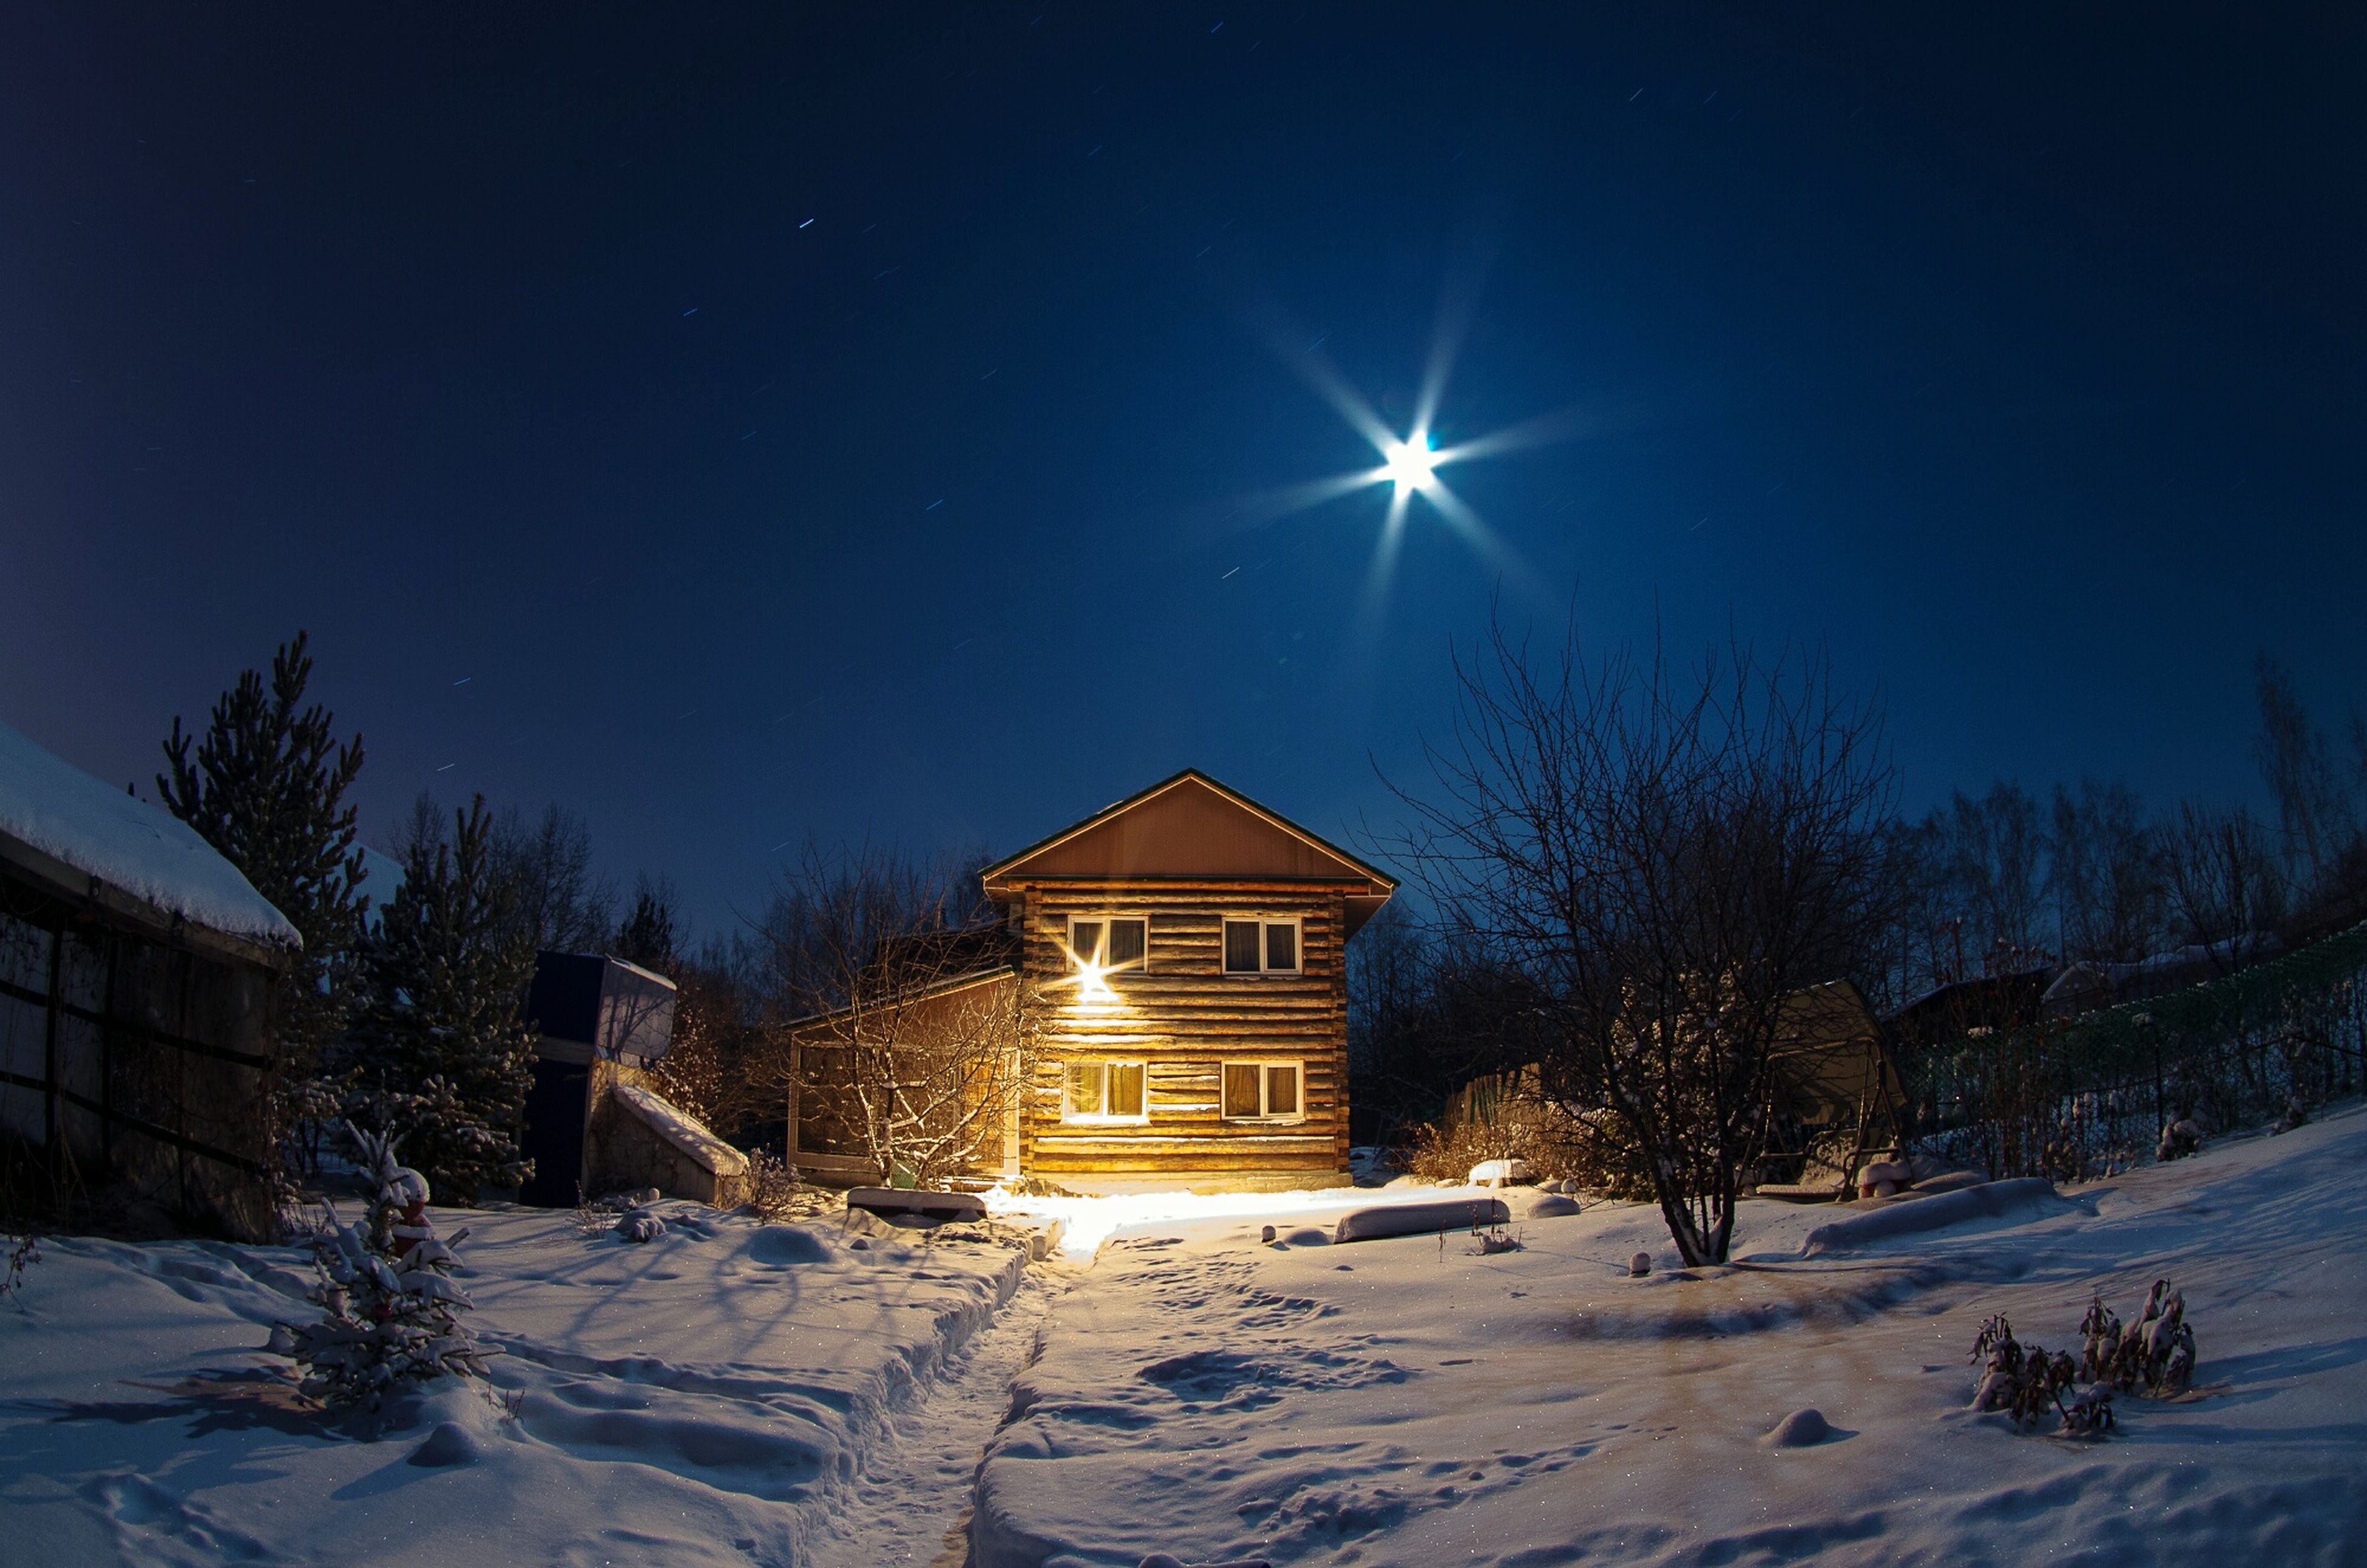 snow, winter, cold temperature, building exterior, built structure, architecture, season, house, tree, clear sky, blue, night, weather, sky, nature, illuminated, street light, covering, sunlight, outdoors